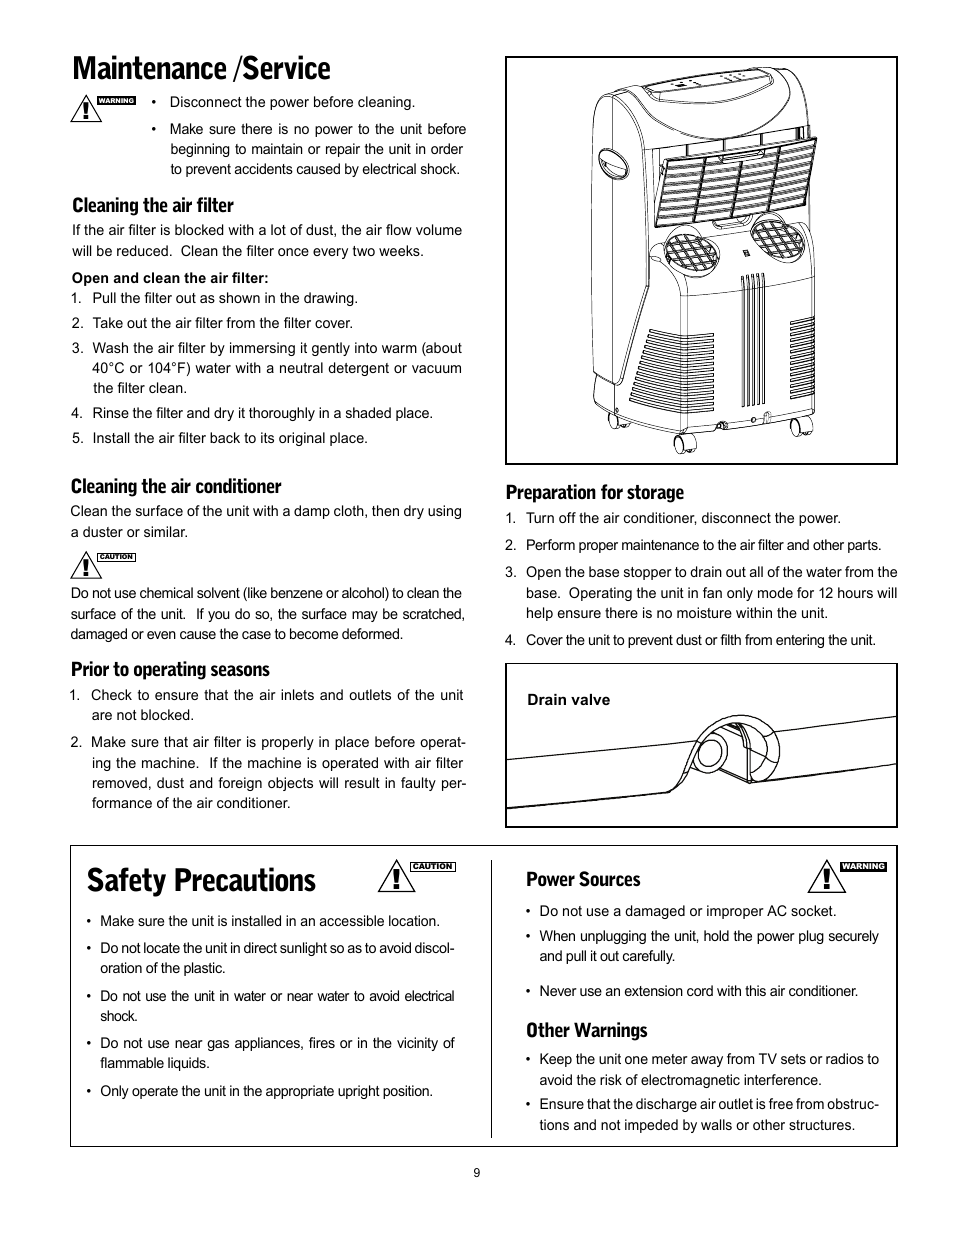 Safety precautions, Maintenance /service, Cleaning the air conditioner    Prior to operating seasons